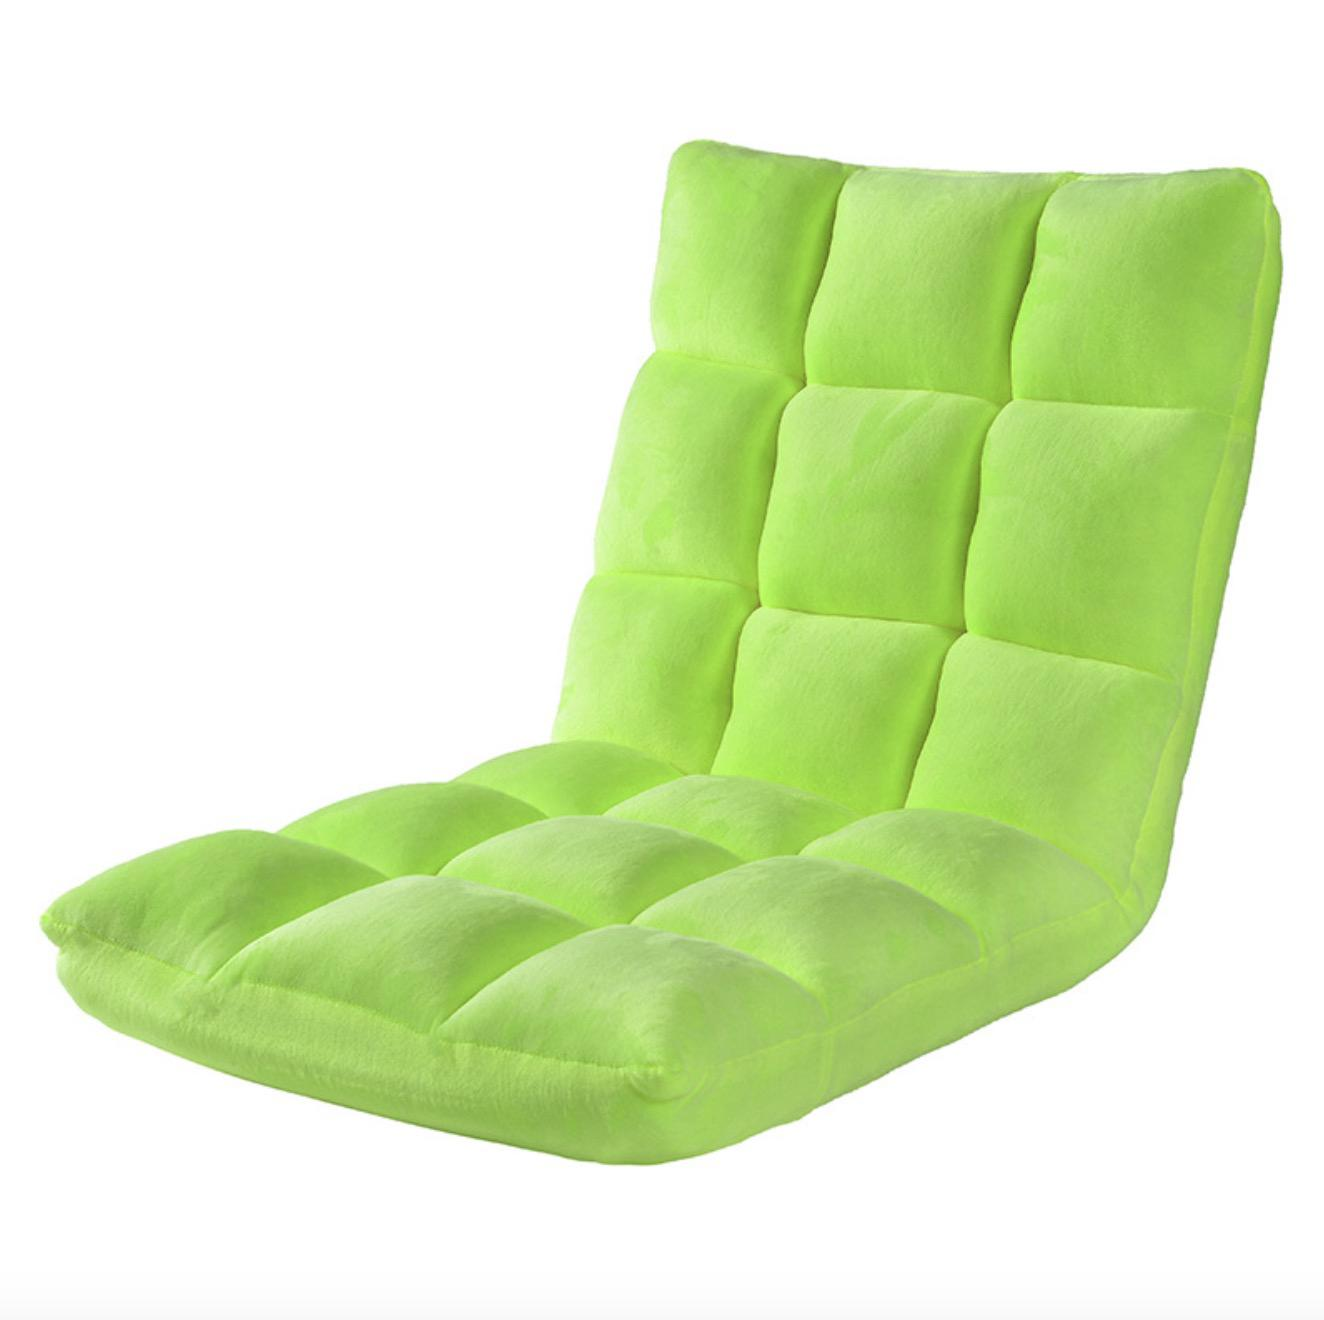 (Cotton Suede) 18 Cubes Washable 3-Fold Floor Chair - Small